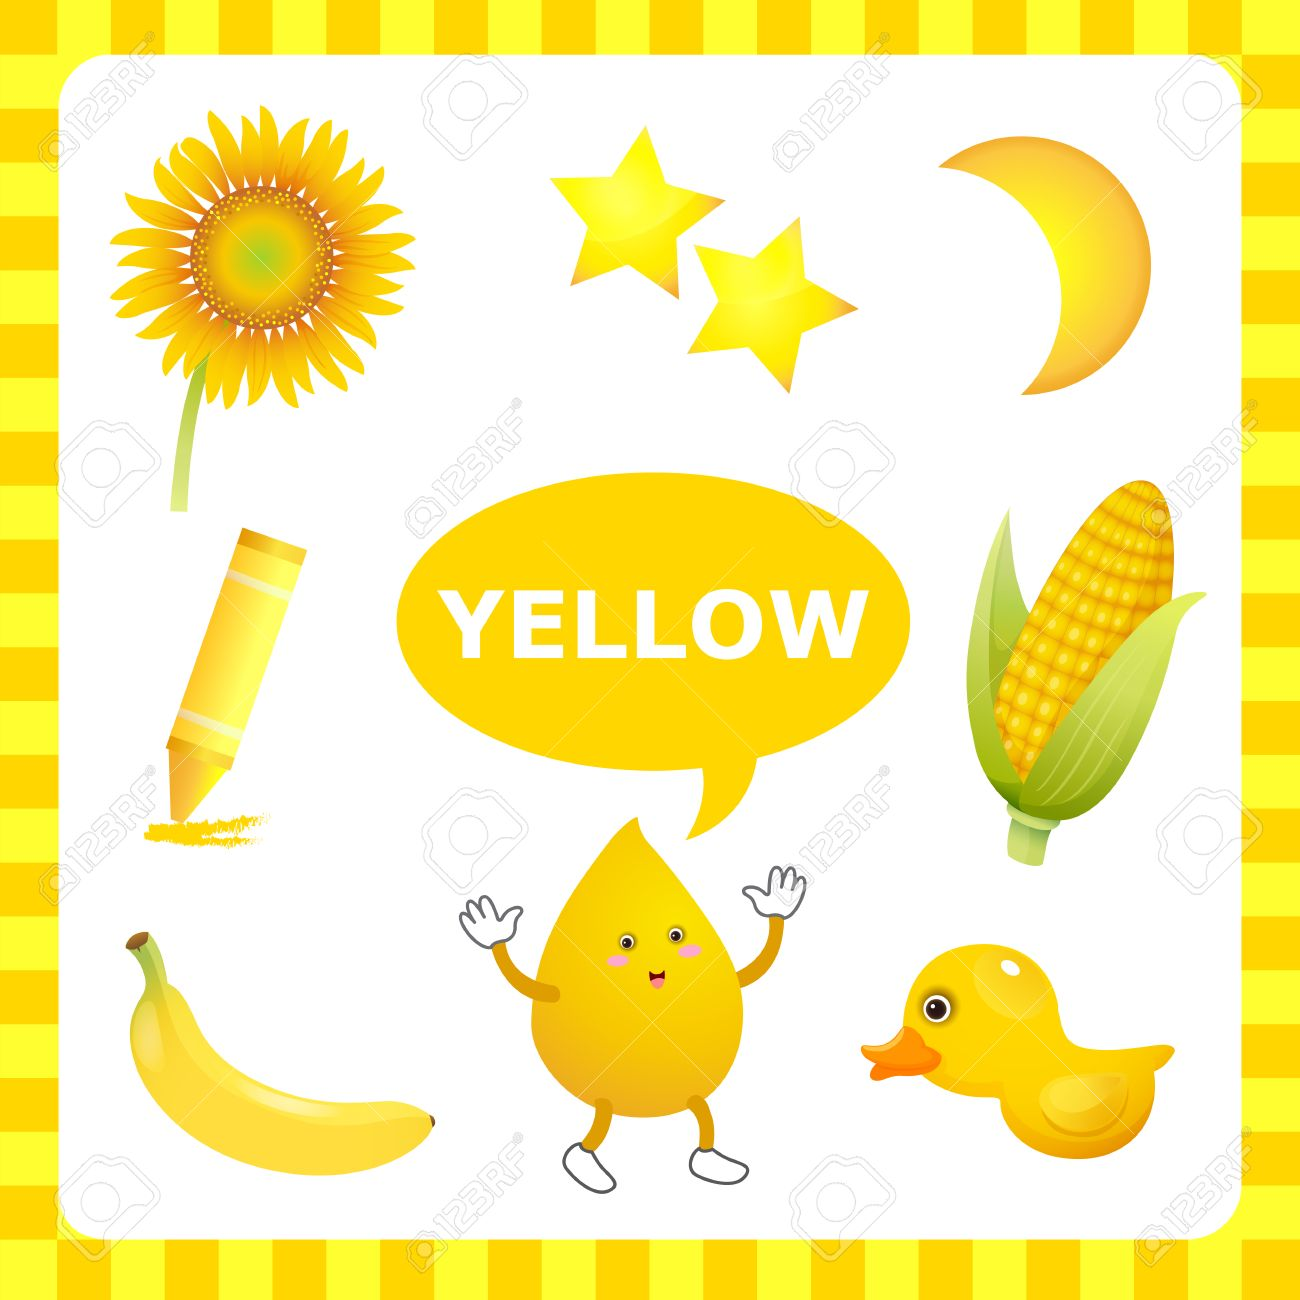 Learn The Color Yellow Things That Are Stock Vector